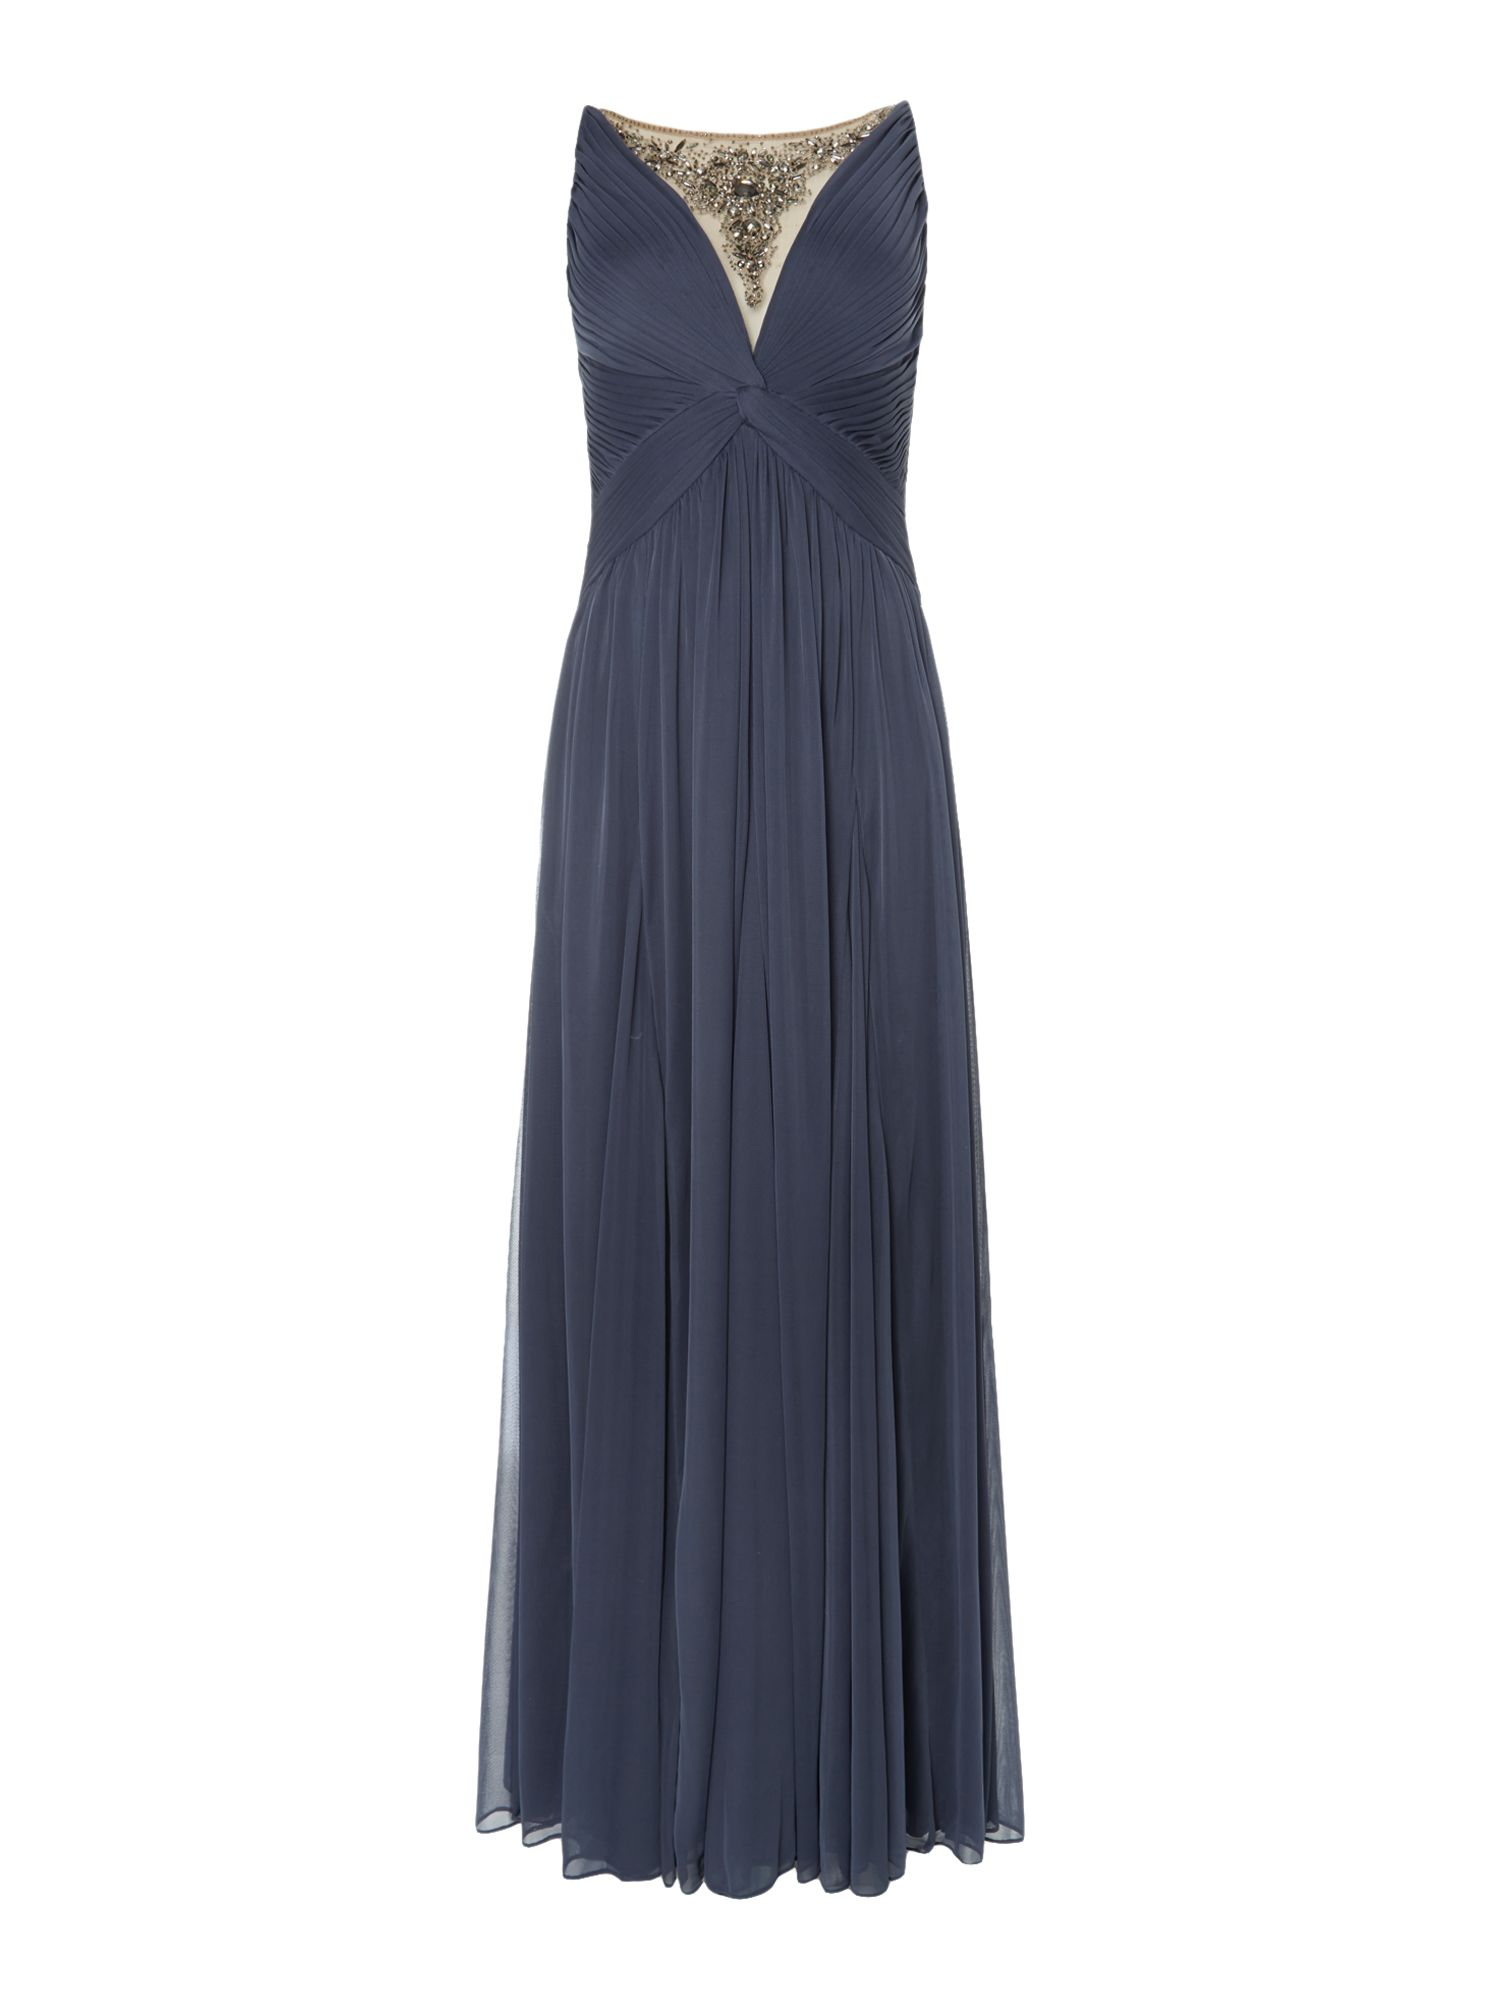 Adrianna Papell Illusion V neck beaded gown $100.00 AT vintagedancer.com